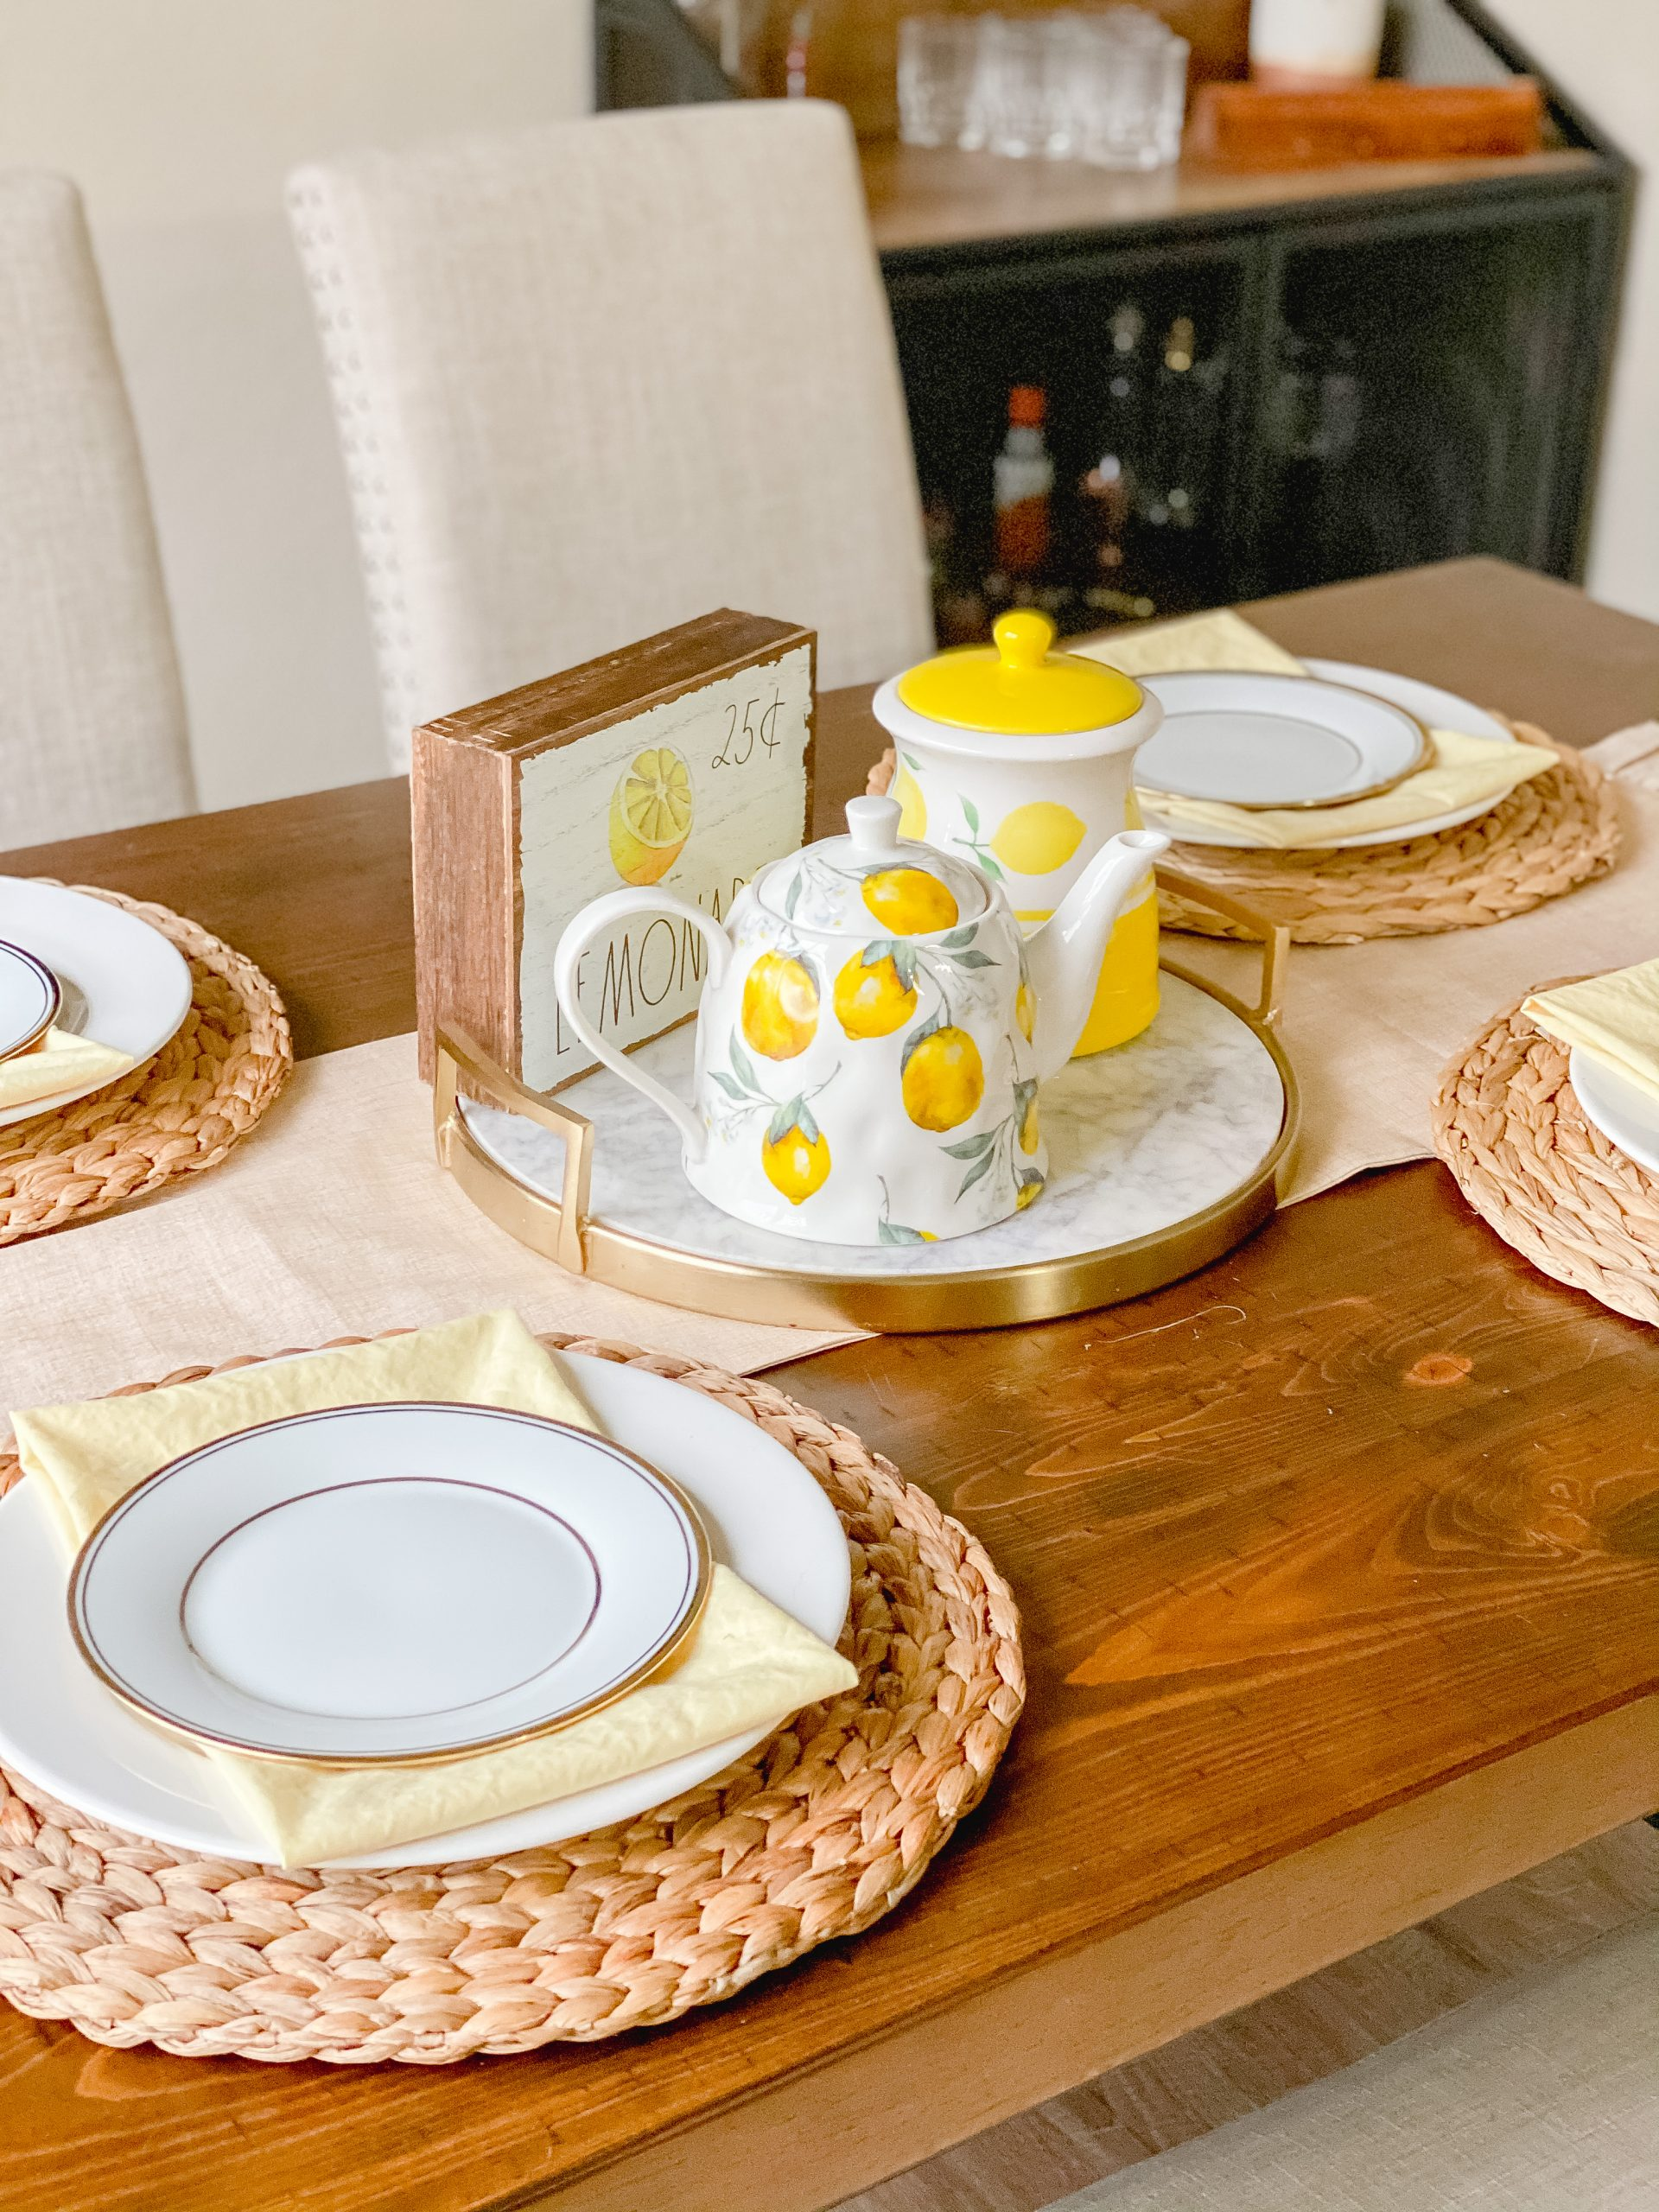 Table decor for spring with yellow napkins and lemon decor.